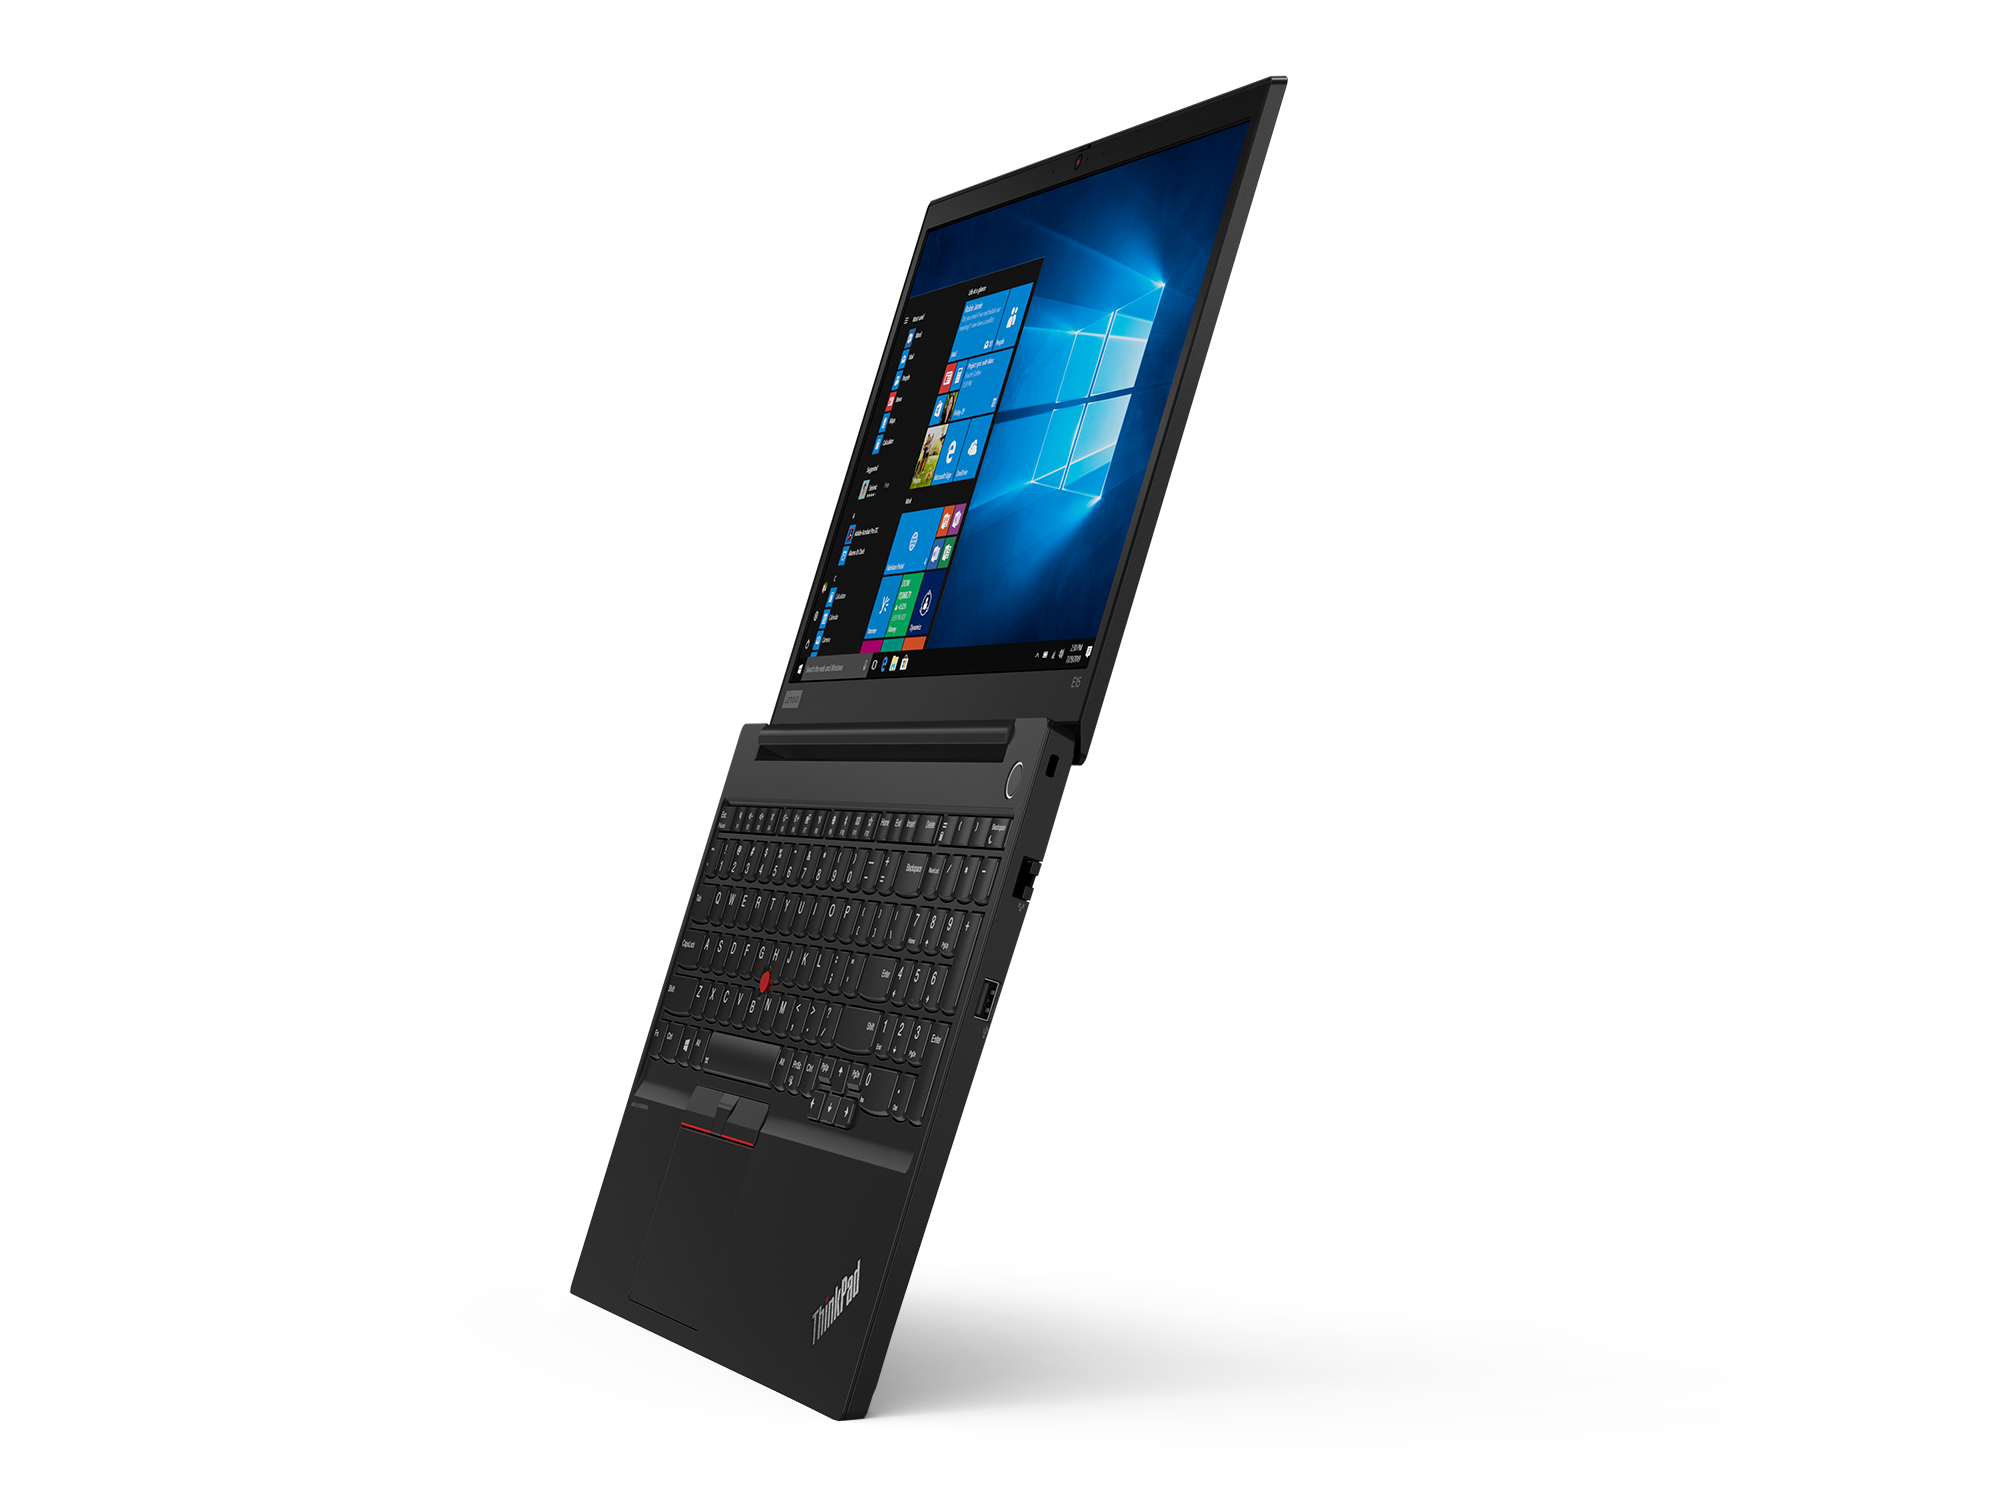 Lenovo Thinkpad E15 notebook